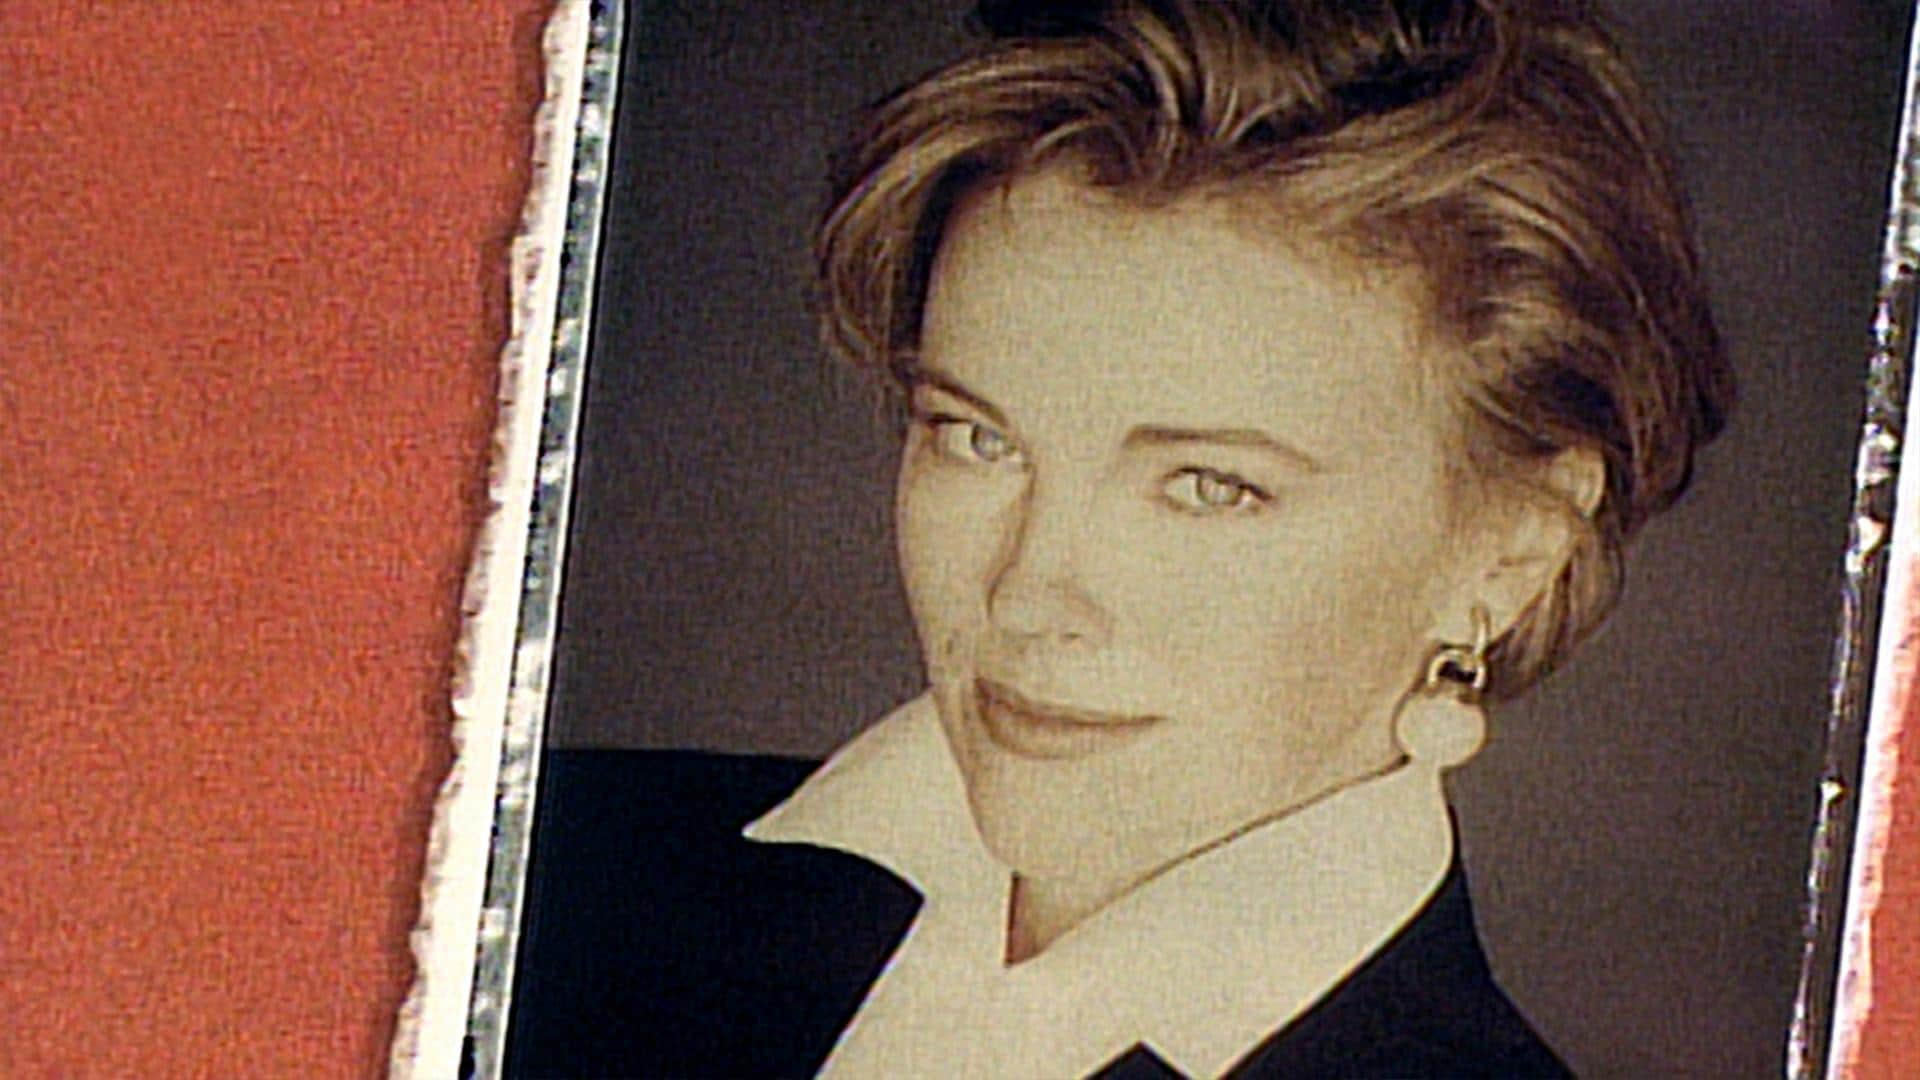 Catherine O'Hara: October 31, 1992